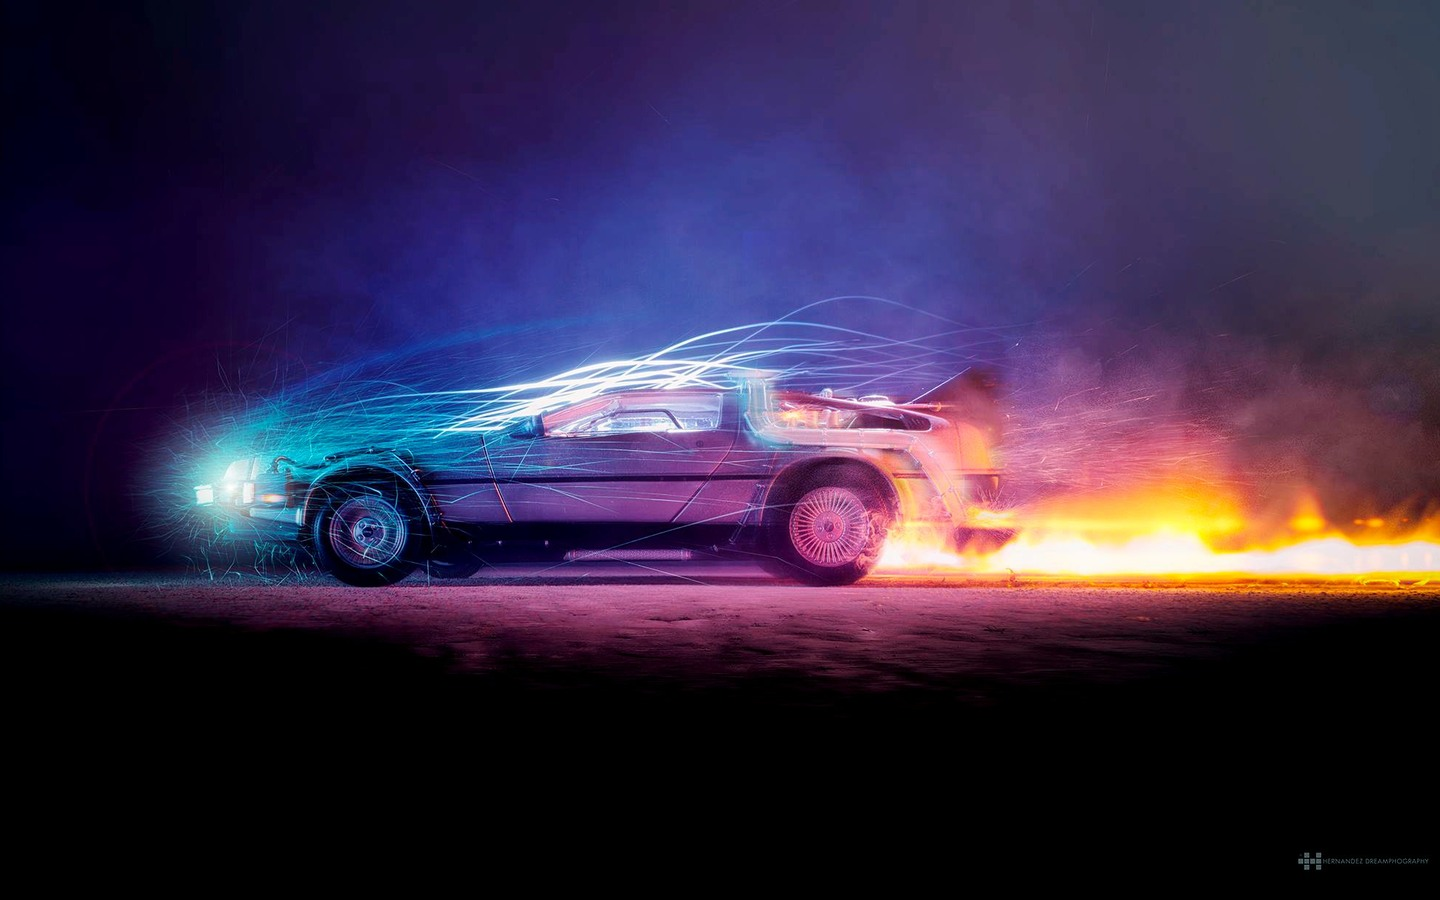 car-lights-flame-back-to-the-future-rz.jpg